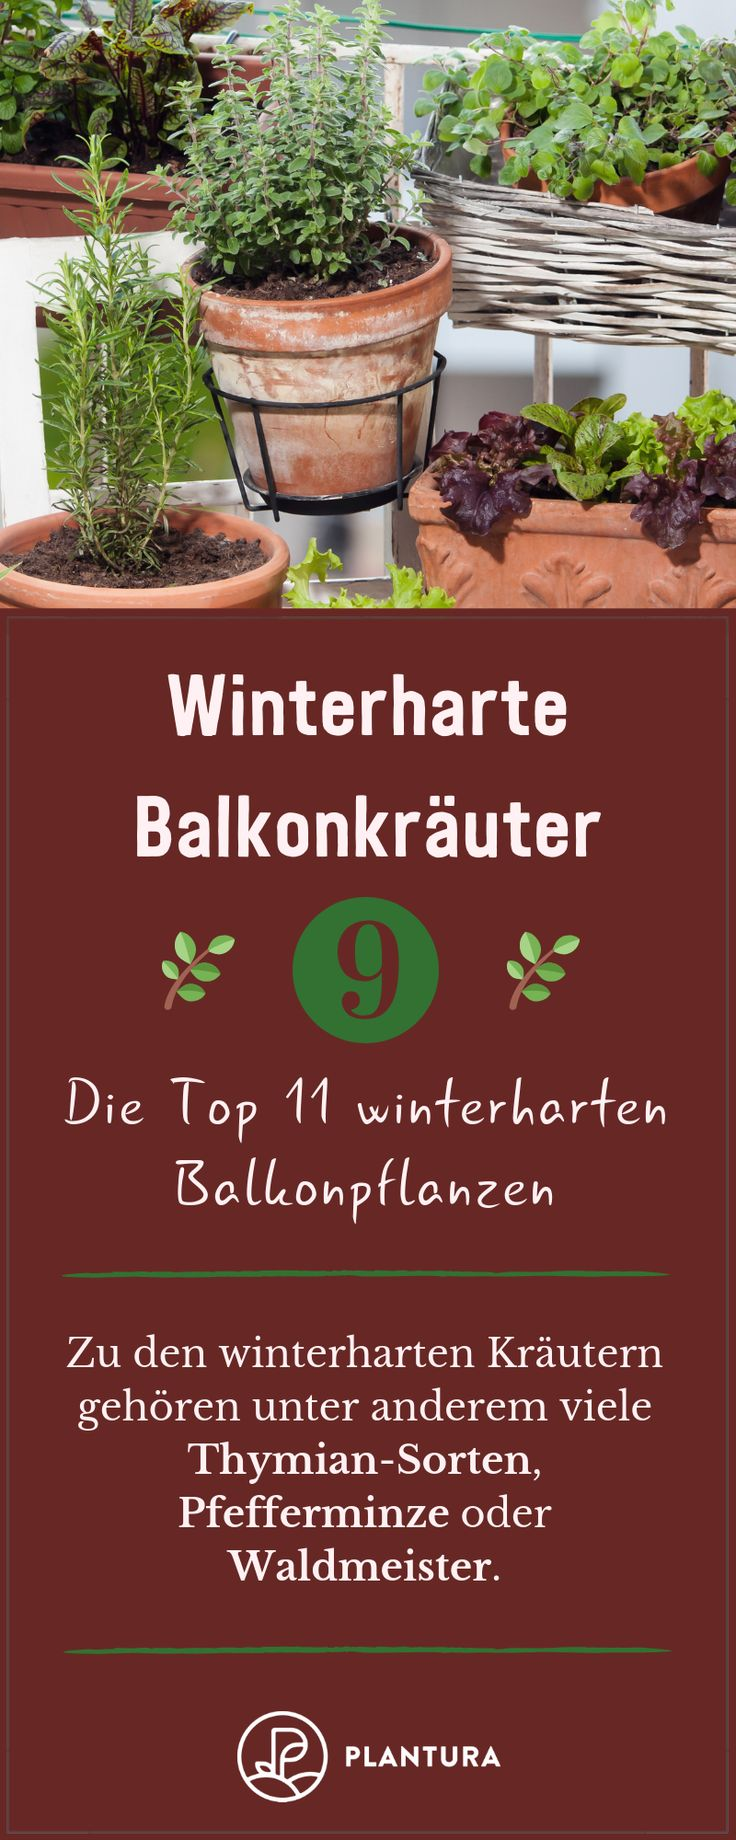 winterharte balkonpflanzen die top 11 f r ihren balkon. Black Bedroom Furniture Sets. Home Design Ideas